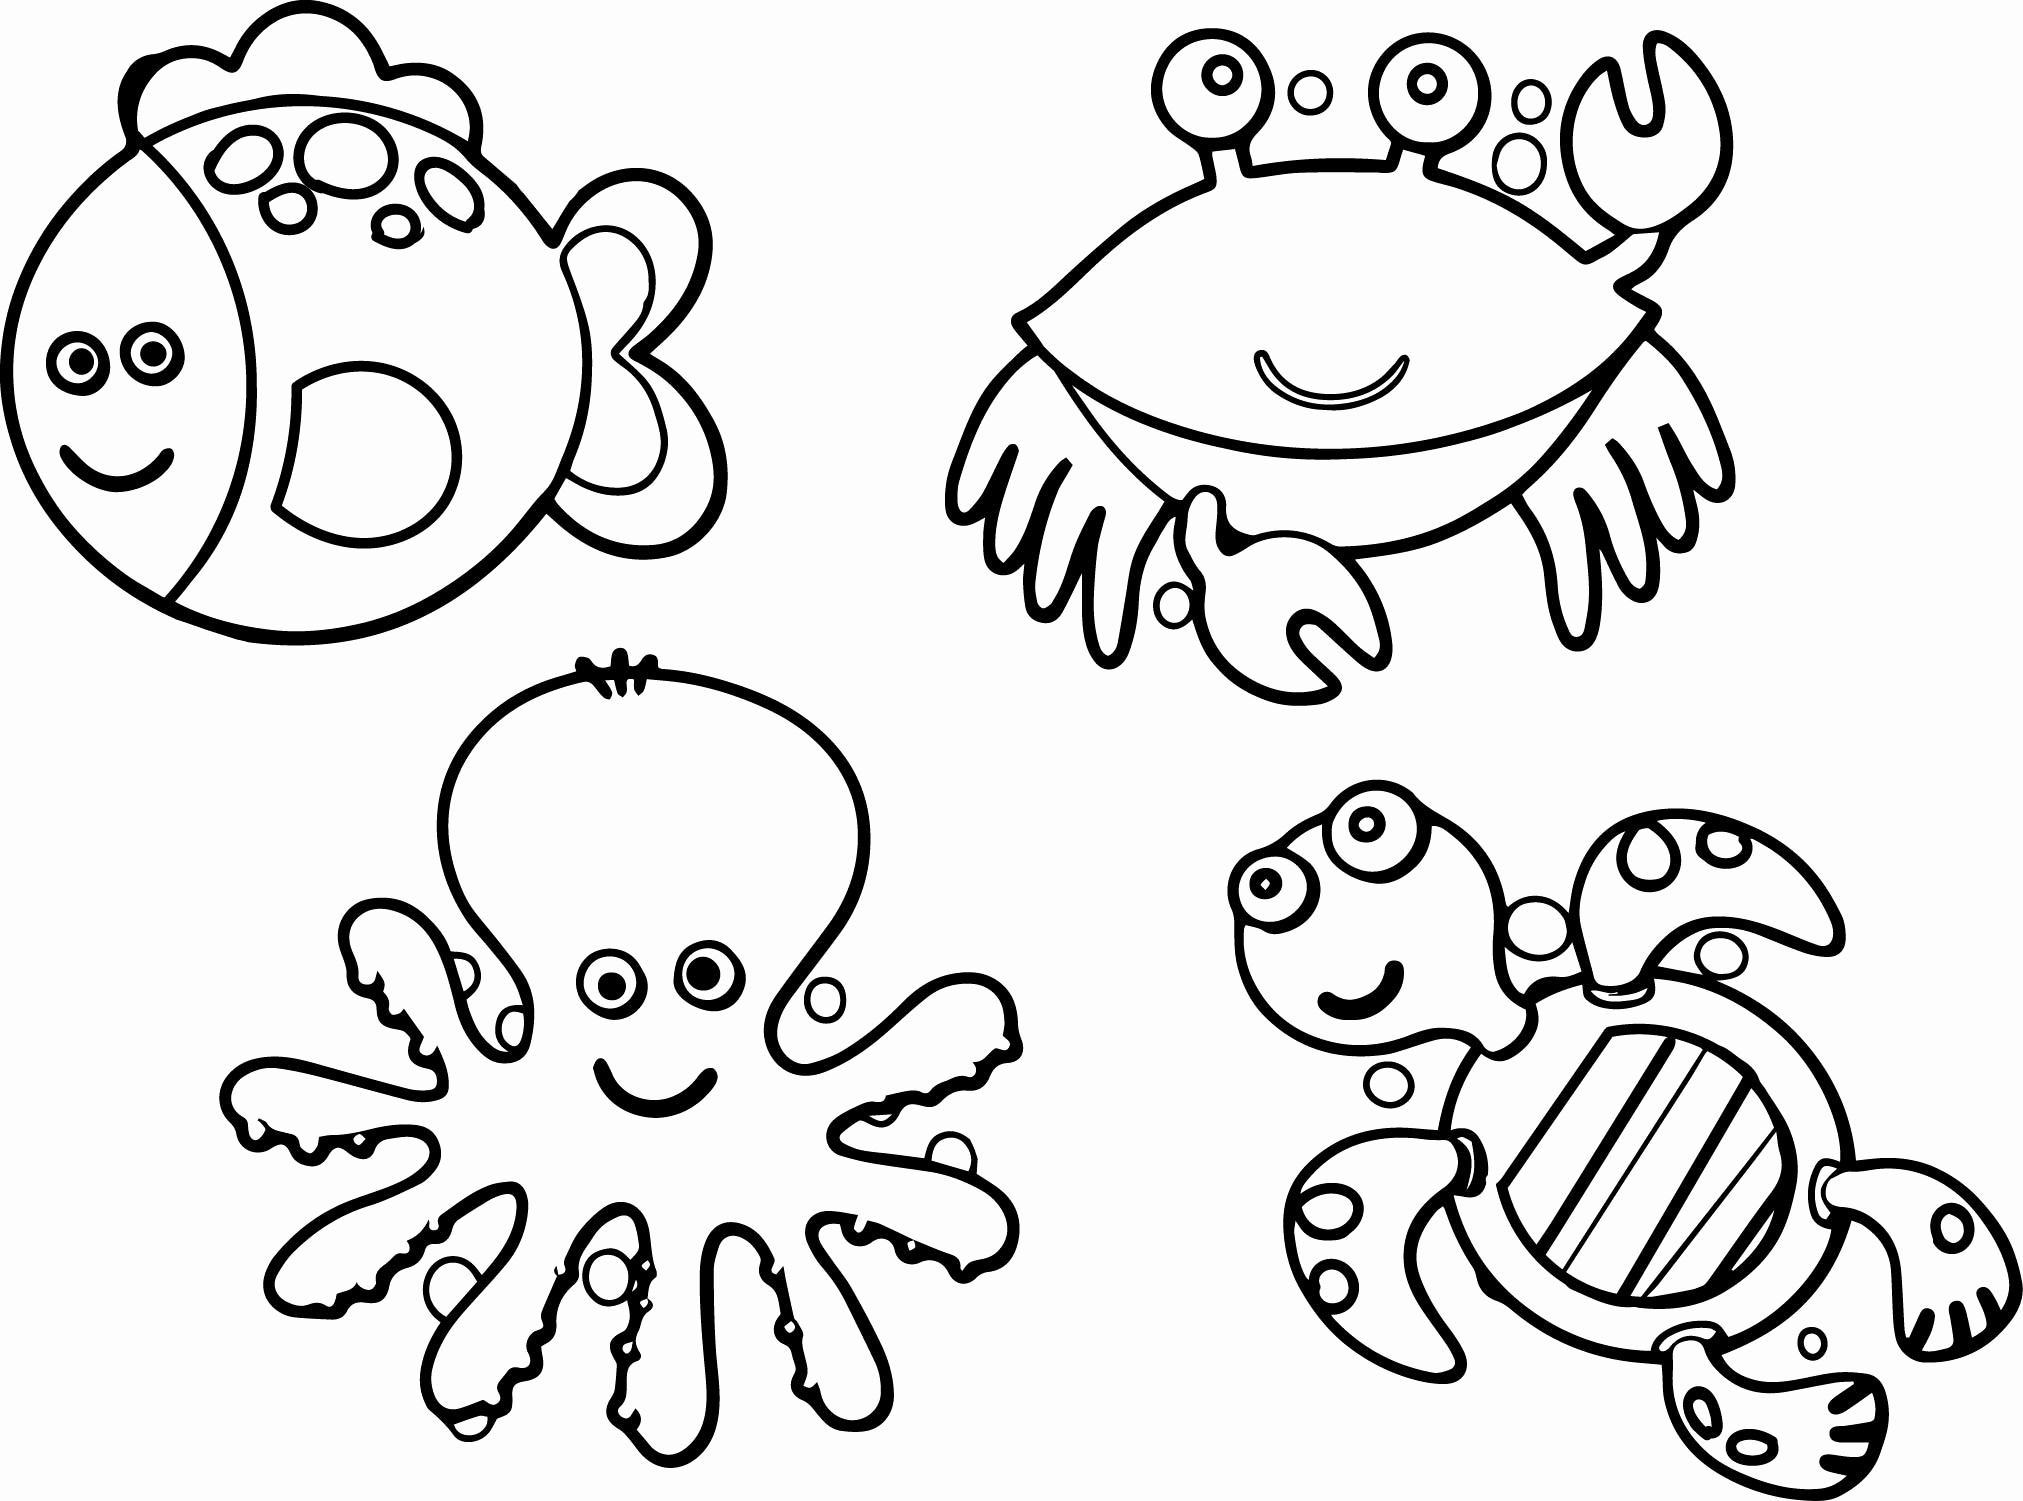 - Free Printable Animal Coloring Pages Printable Animal Coloring